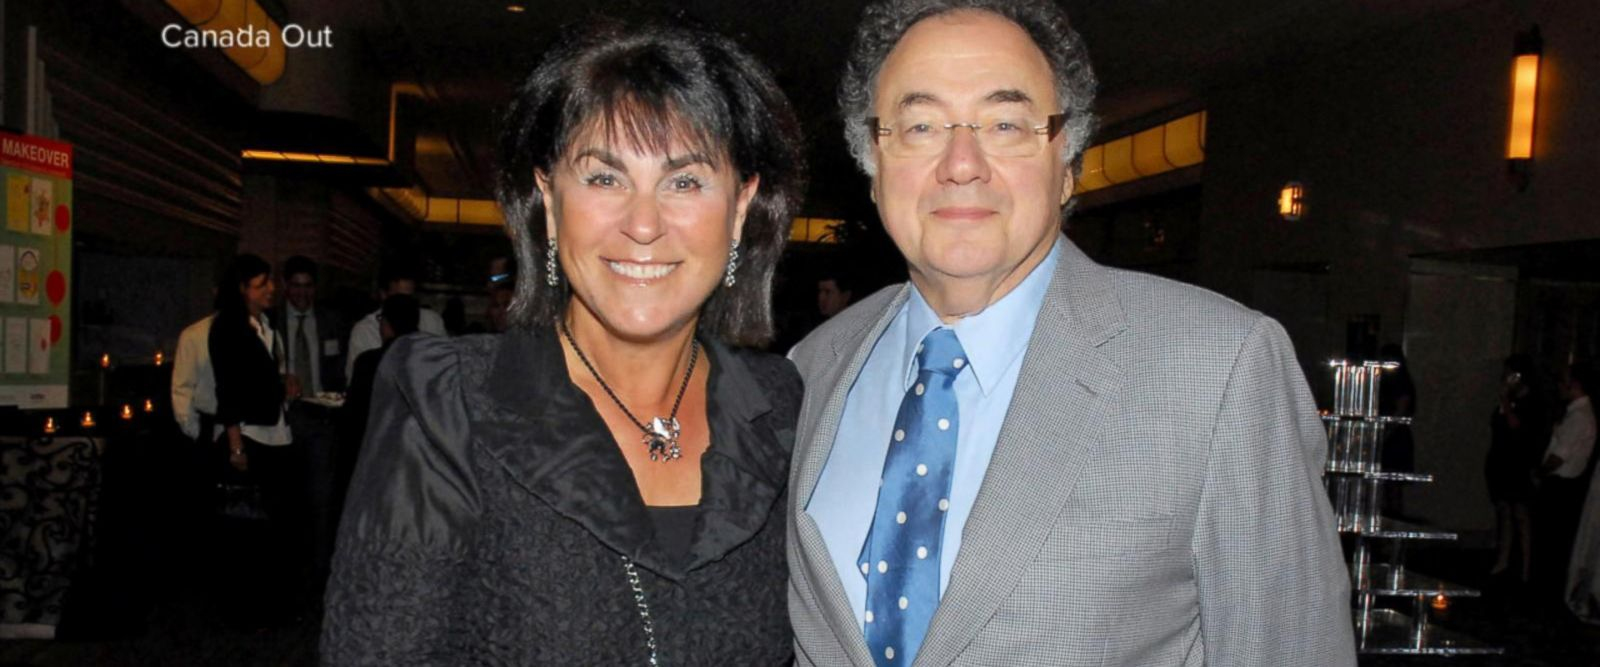 """VIDEO: Responding to media reports on the manner of death of their parents, the family of Canadian drug billionaire Barry Sherman and his wife Honey Sherman said they believe the """"rumors regrettably circulated"""" to be untrue."""